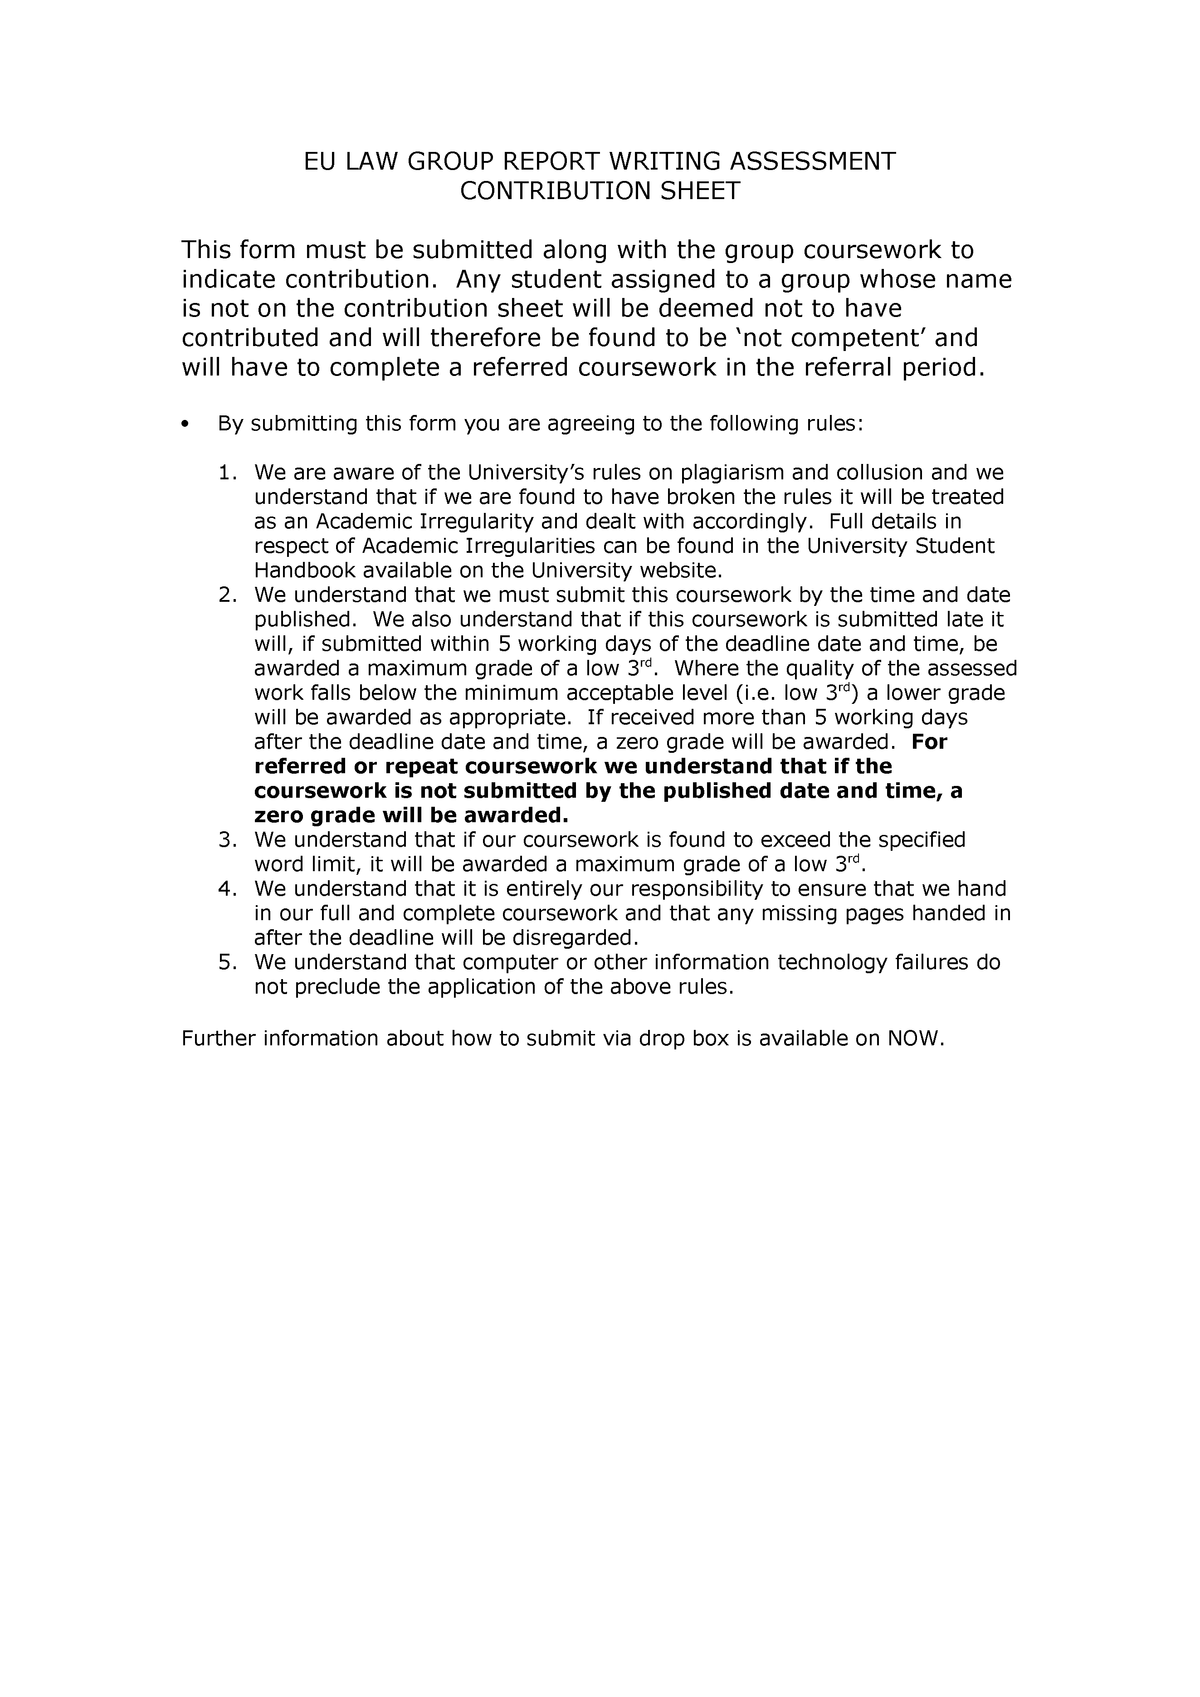 Toronto resume help and job placement